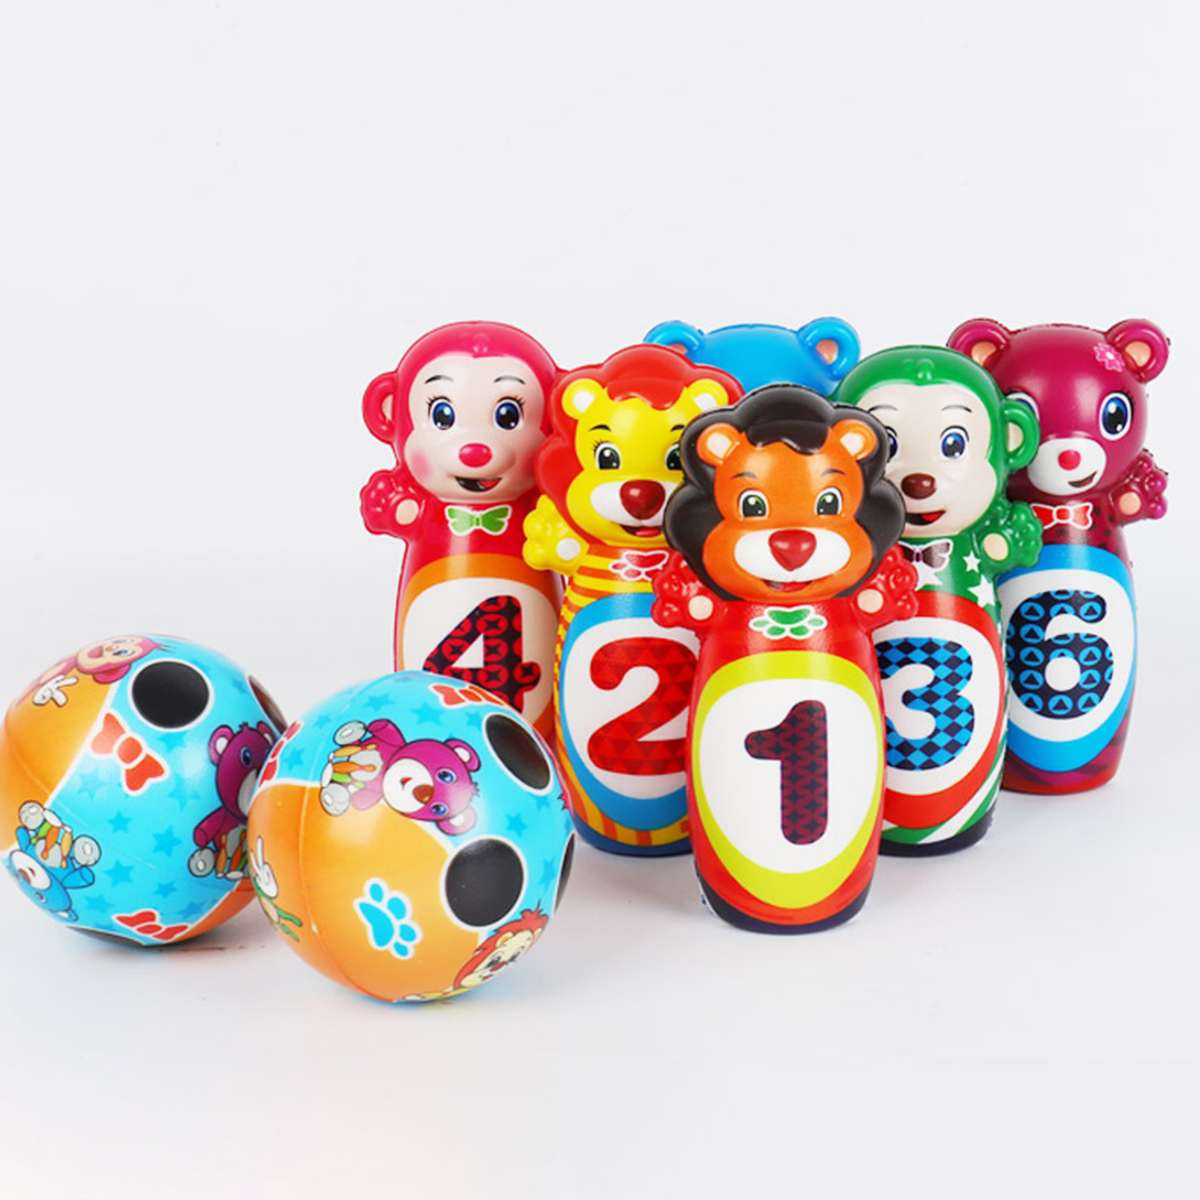 8/12PCS Cute Bowling PU Soft Indoor Sport Play Games Safe Foam Kids Bowling Set Children Indoor Sport Family Funny Game Toy Gift